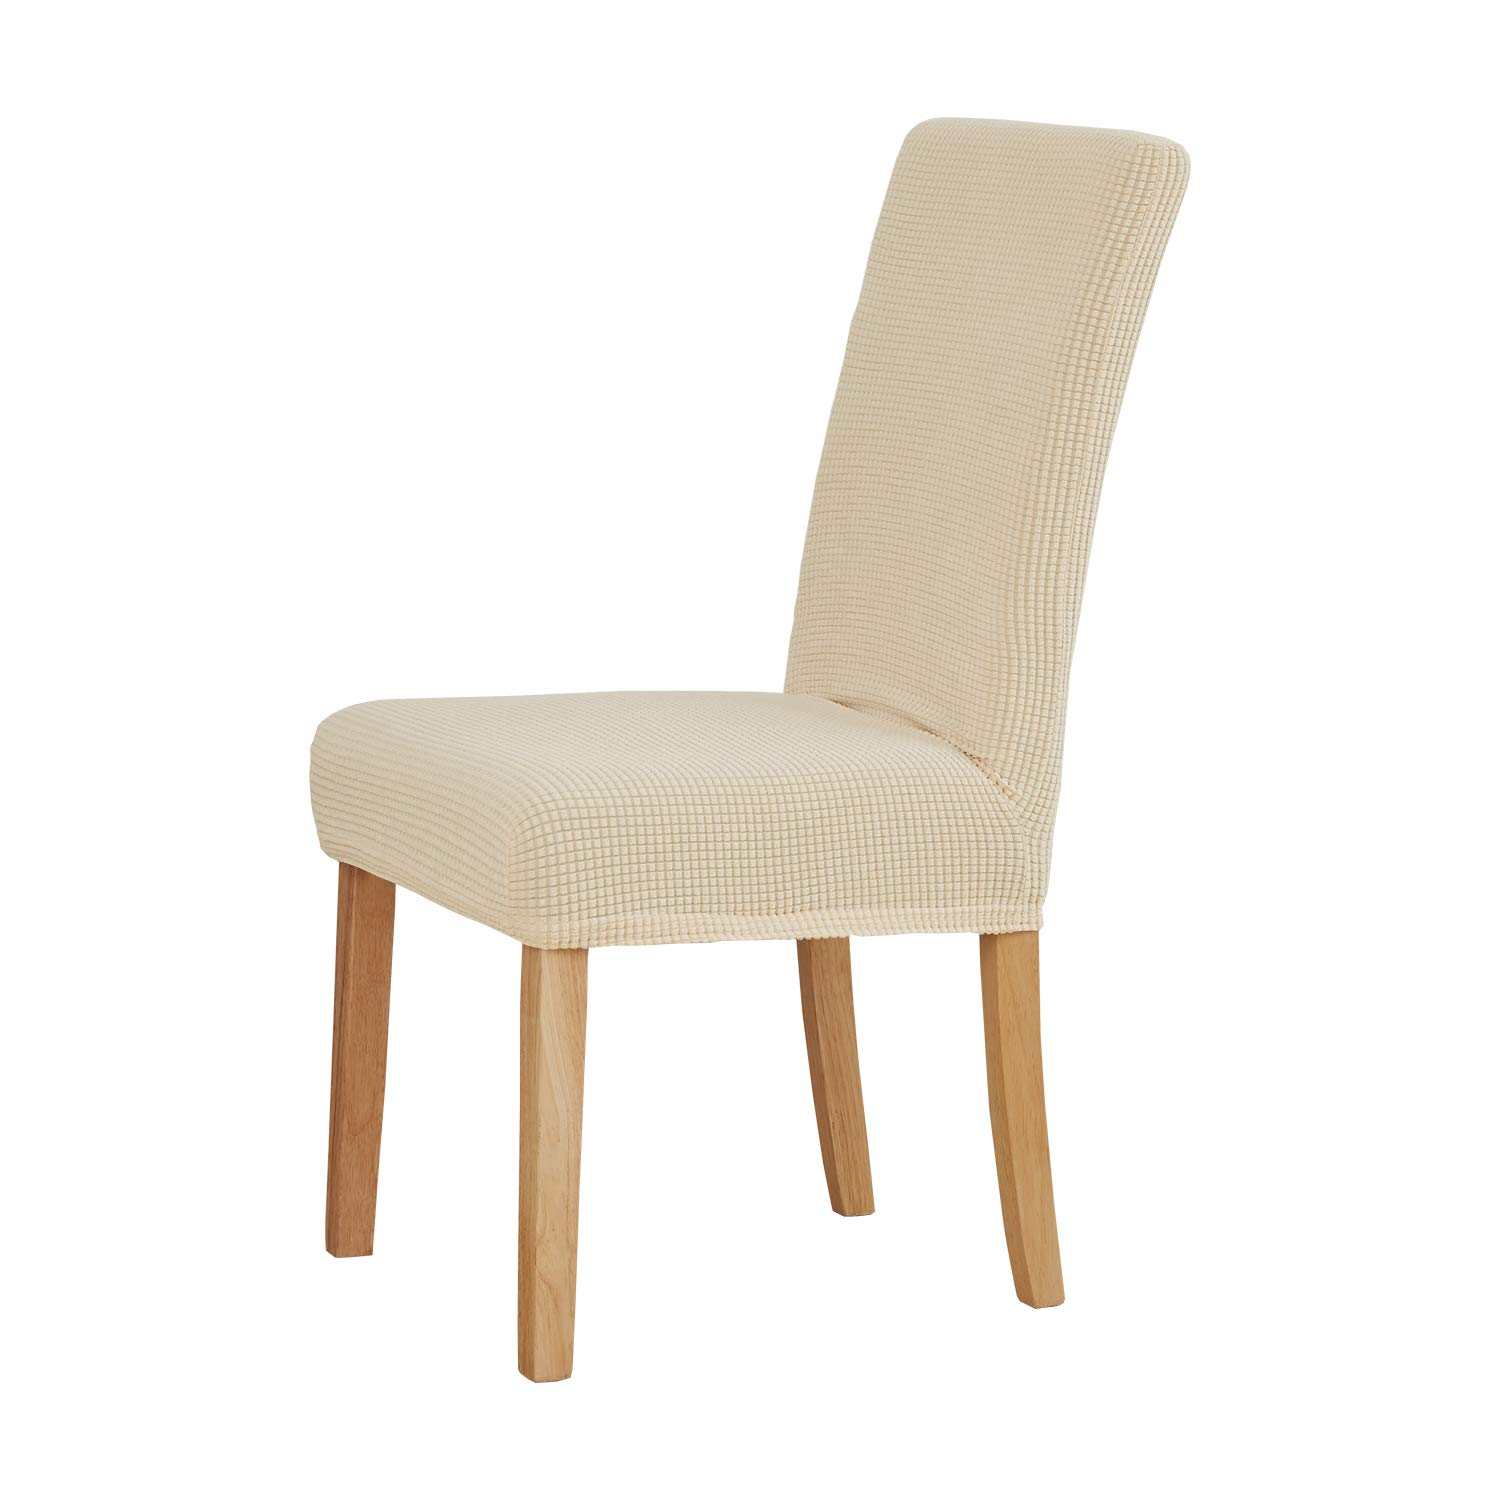 Deconovo Luxury Soft Chair Covers Short Dining Water Resistant Chair Protector Set of 4, Beige